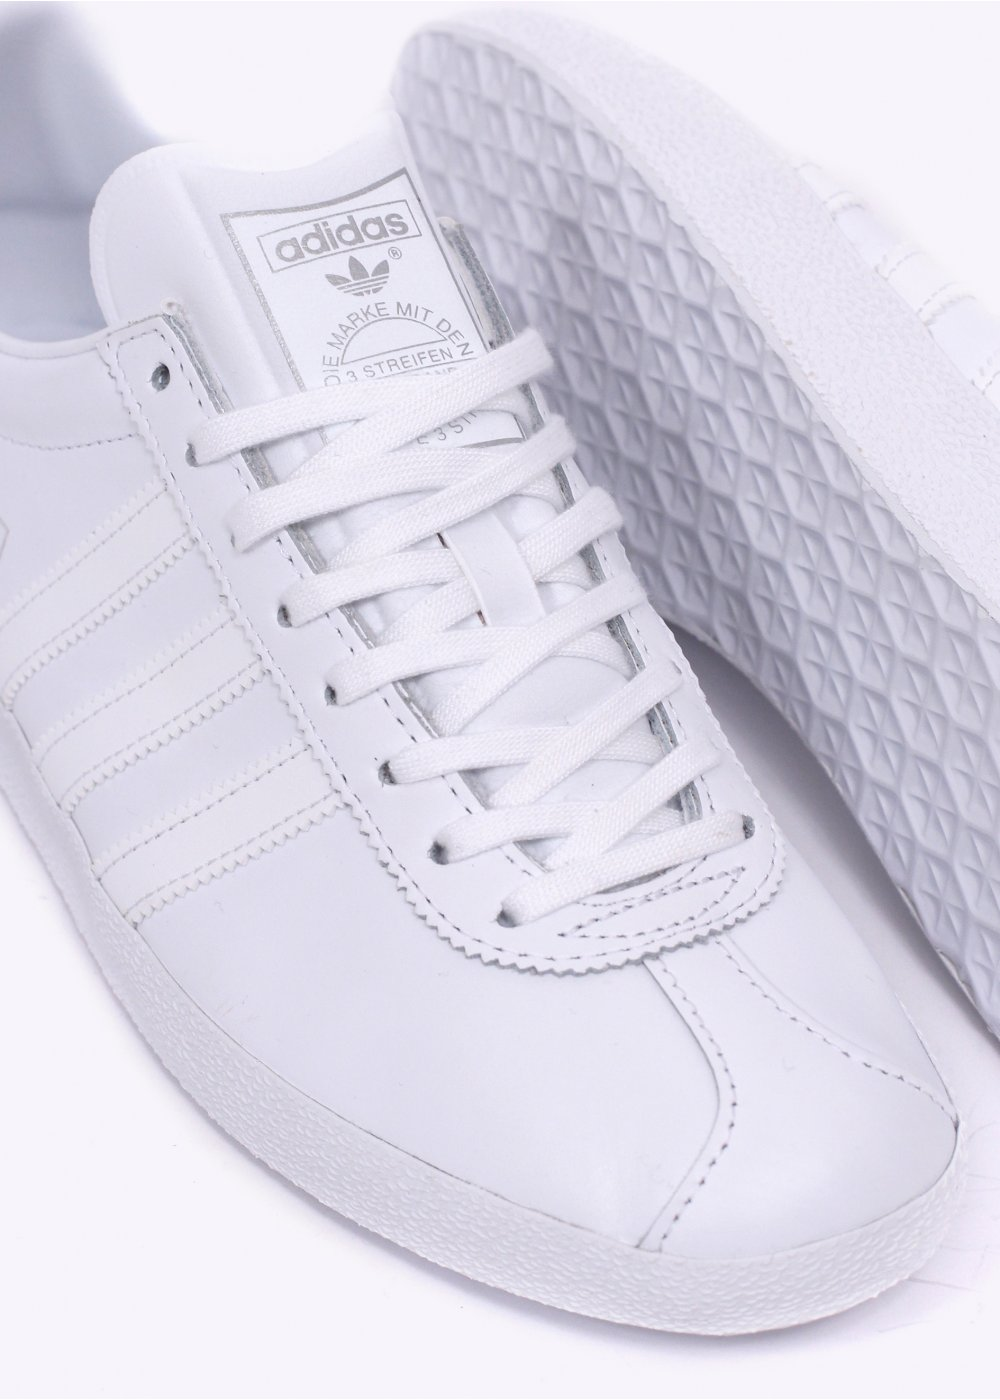 4a0b89b2ce1b Buy adidas leather gazelle   OFF63% Discounted